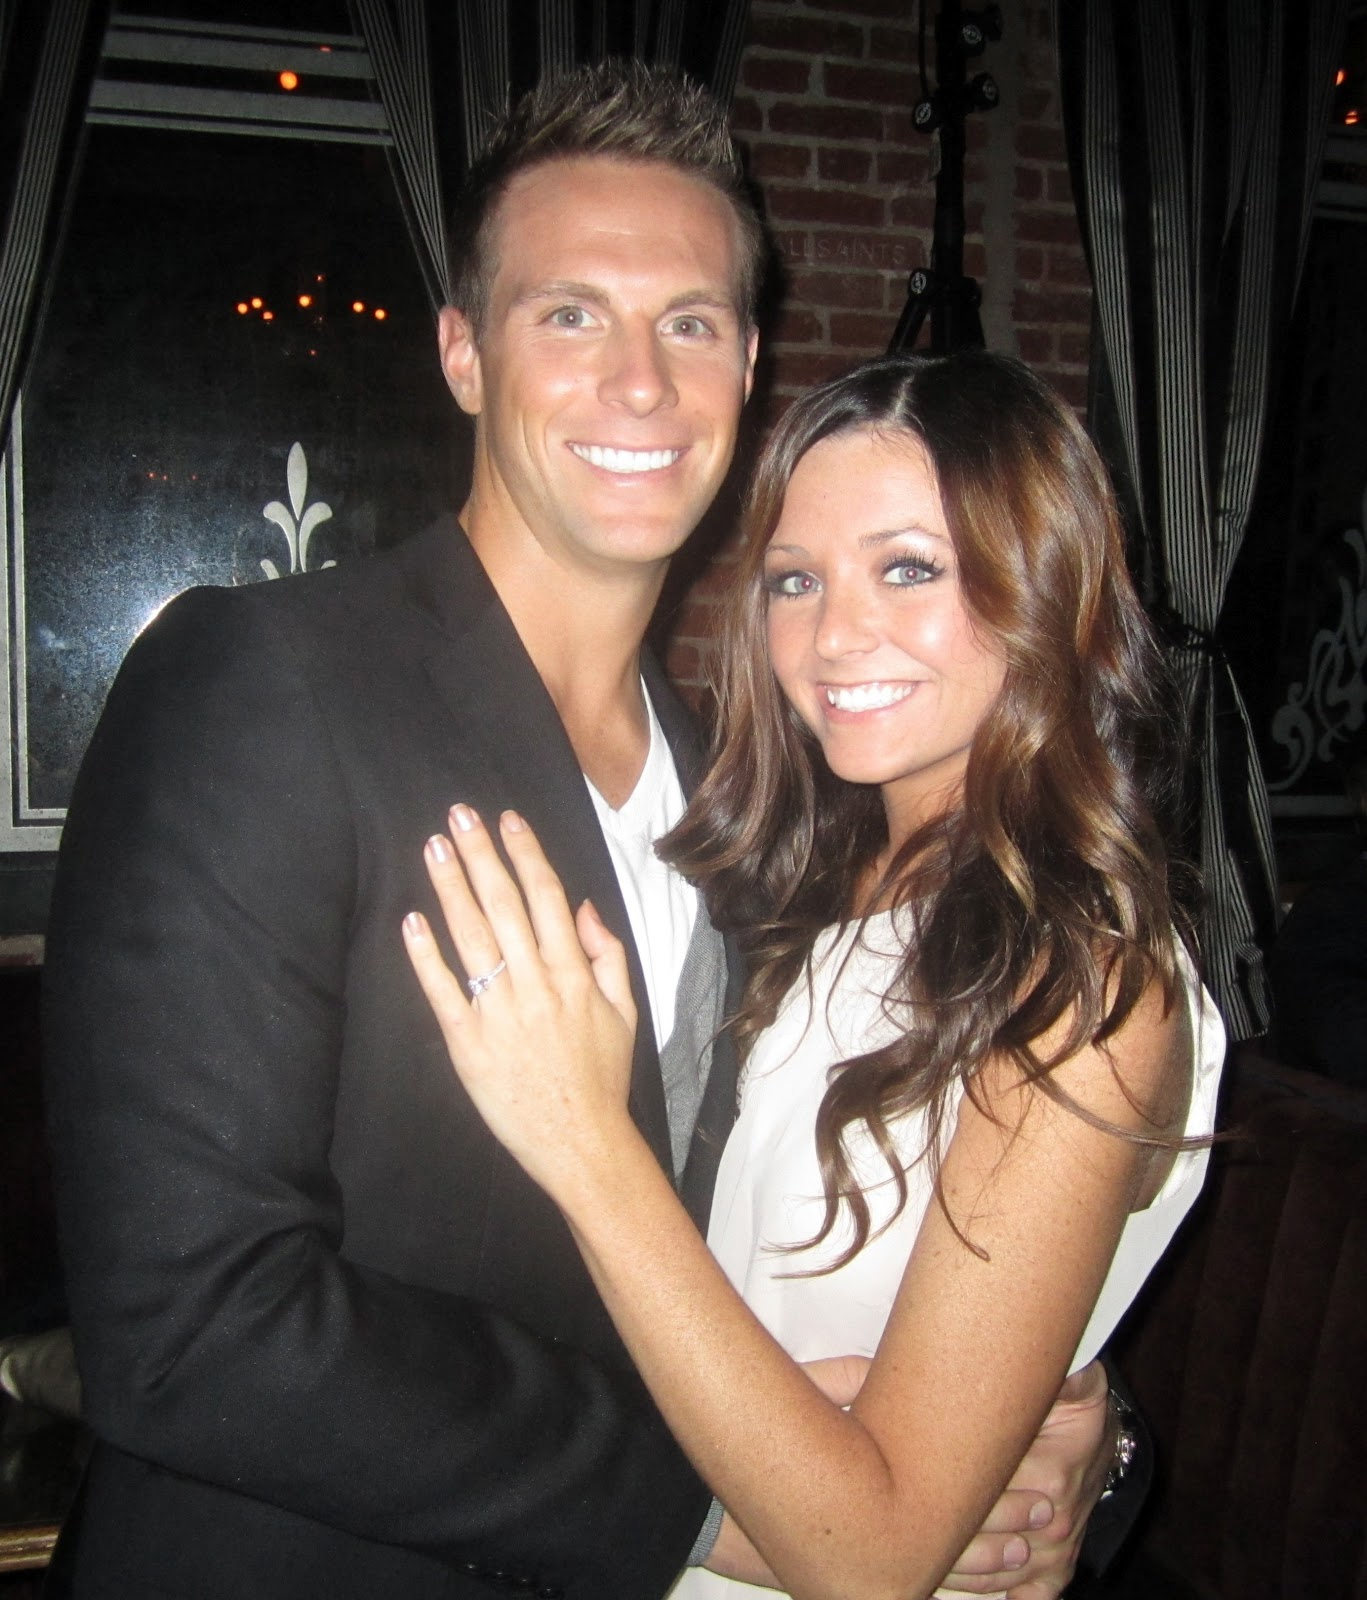 Who Is Holly From The Bachelor Pad Hookup